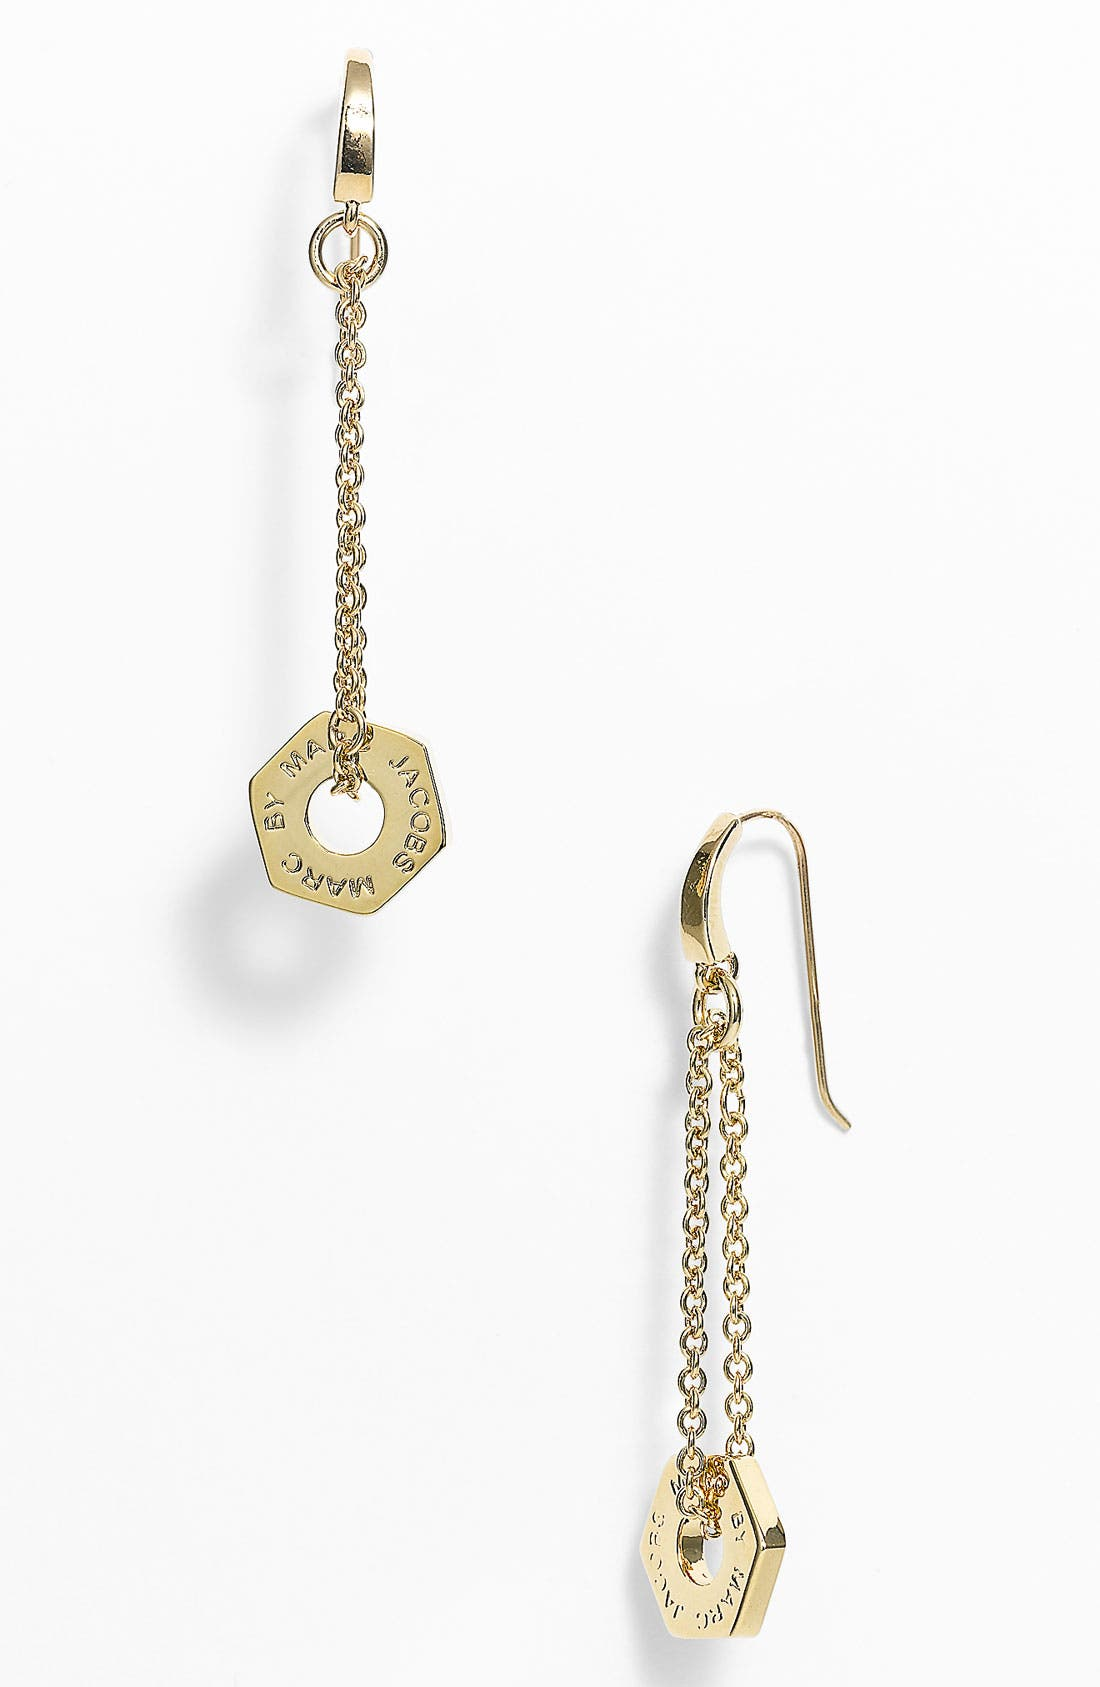 Main Image - MARC BY MARC JACOBS 'Bolts' Linear Earrings